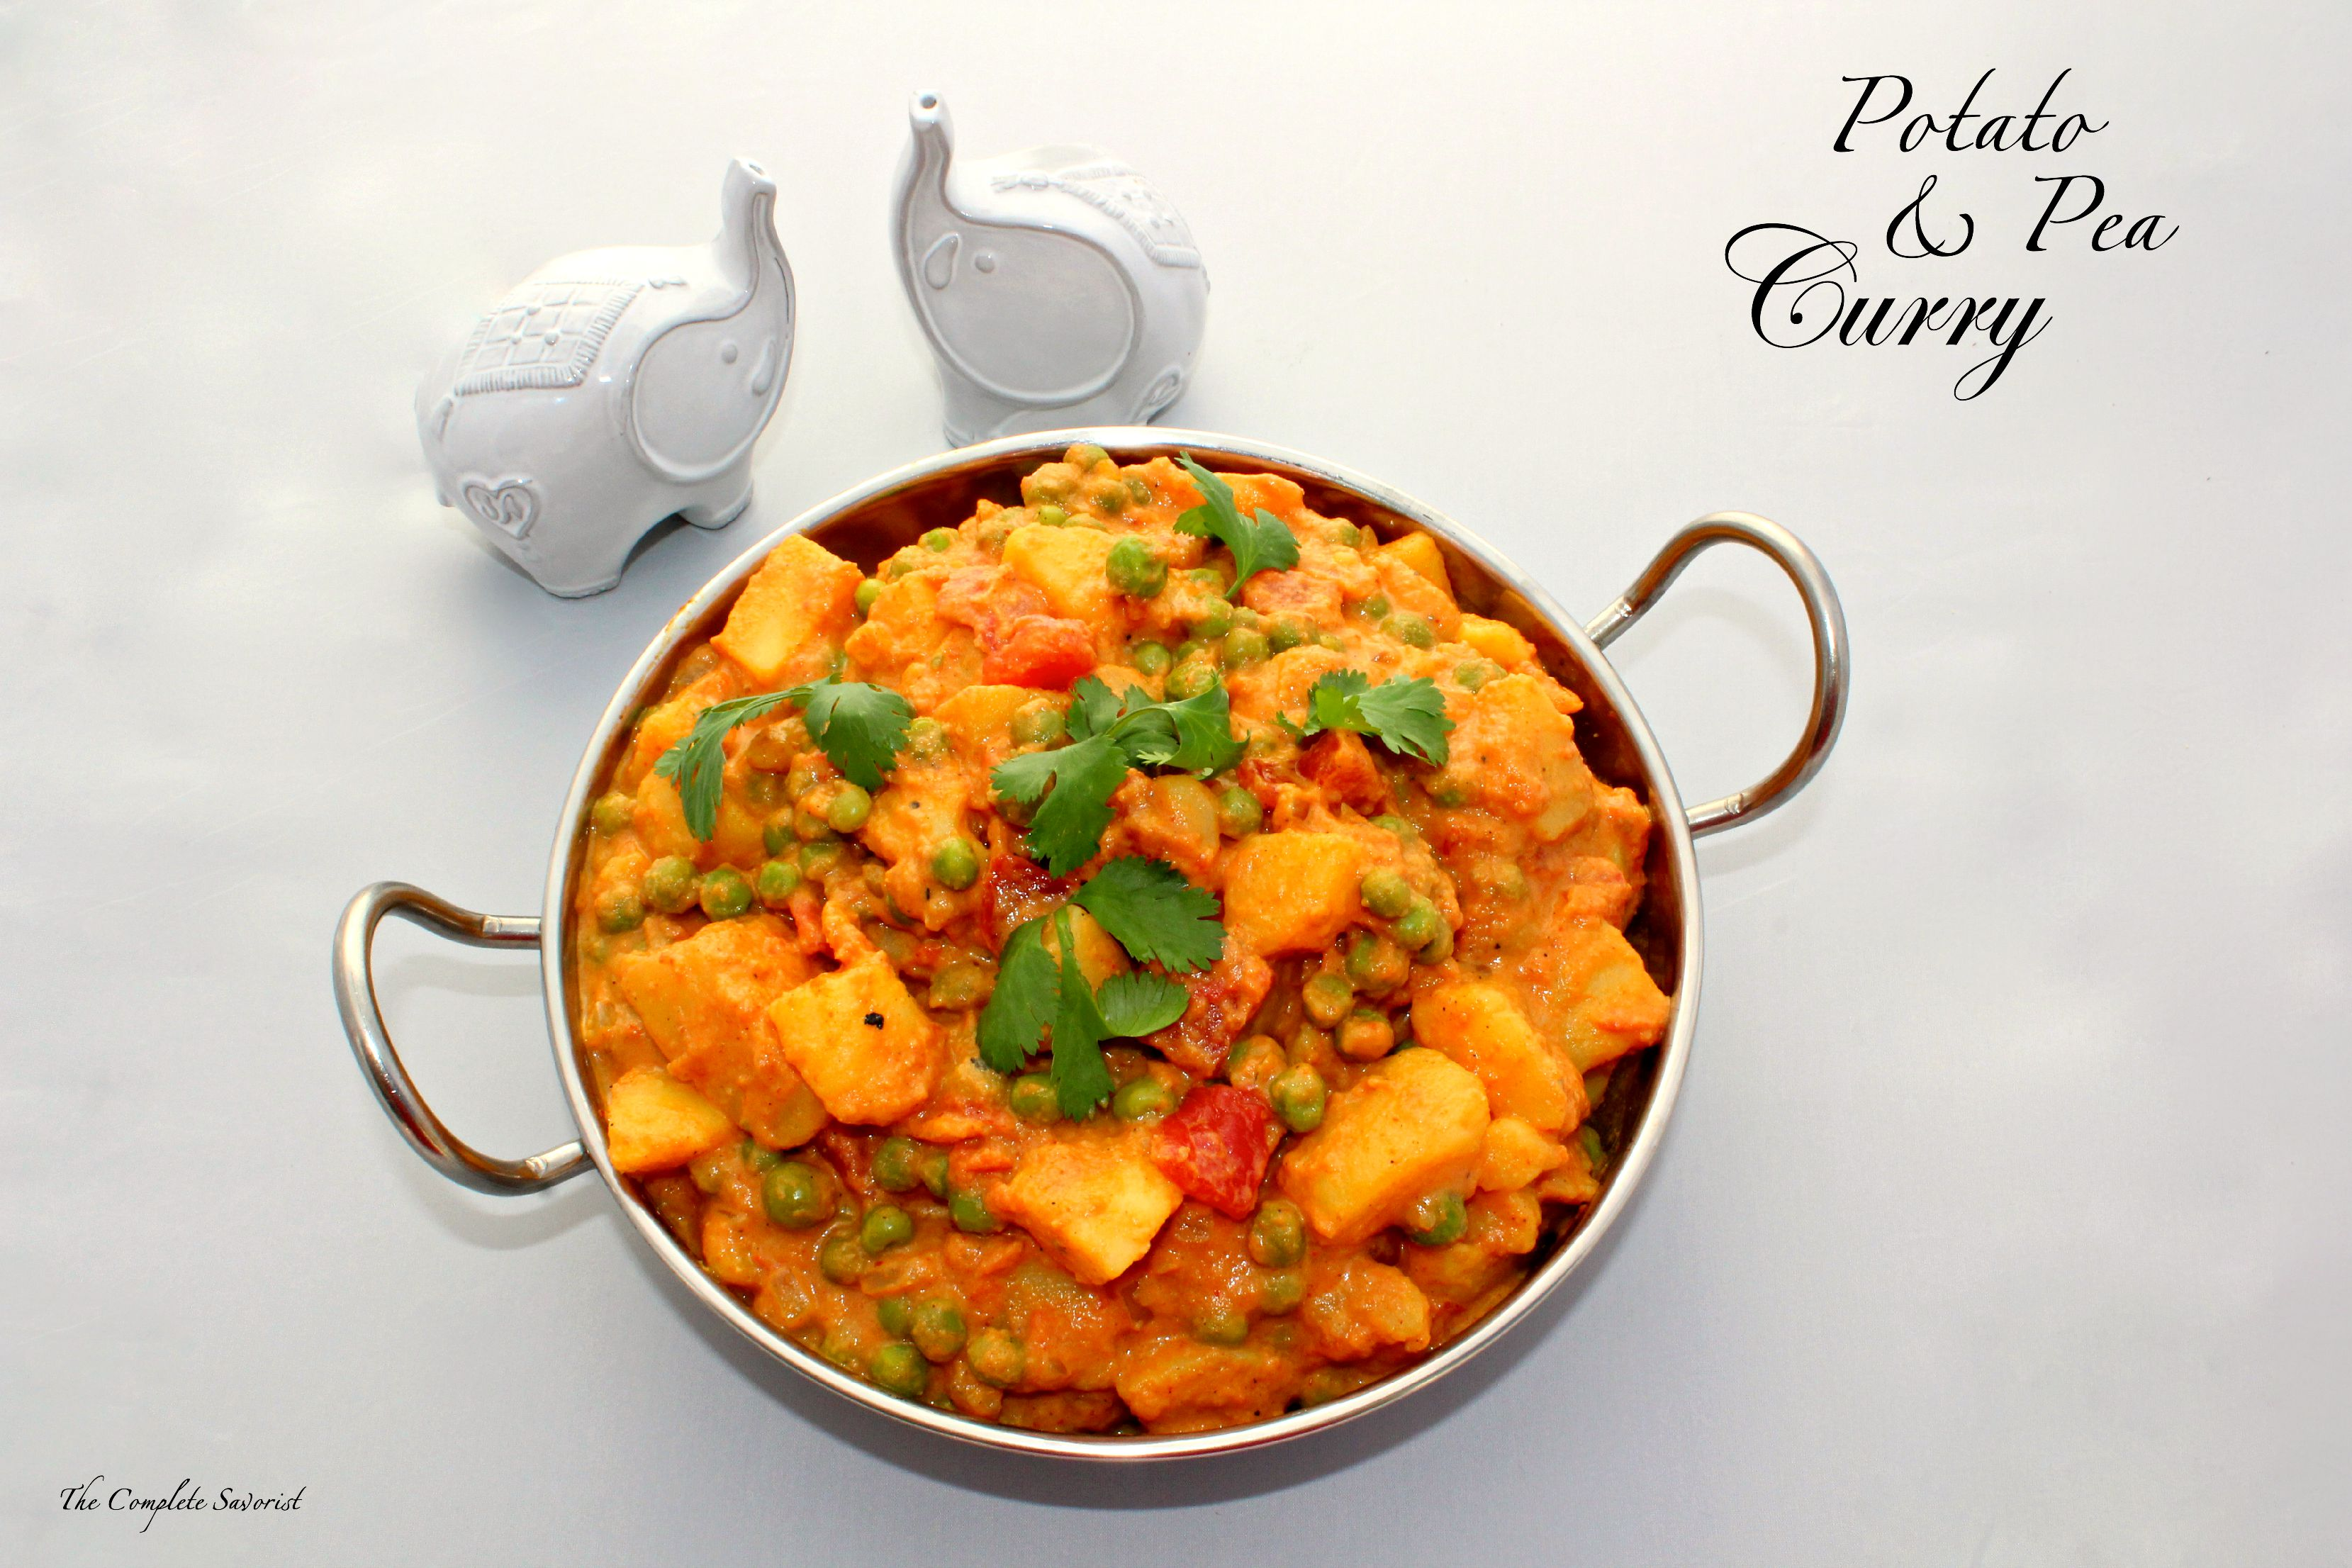 Potato and pea curry the complete savorist me what do you want for dinner forumfinder Image collections